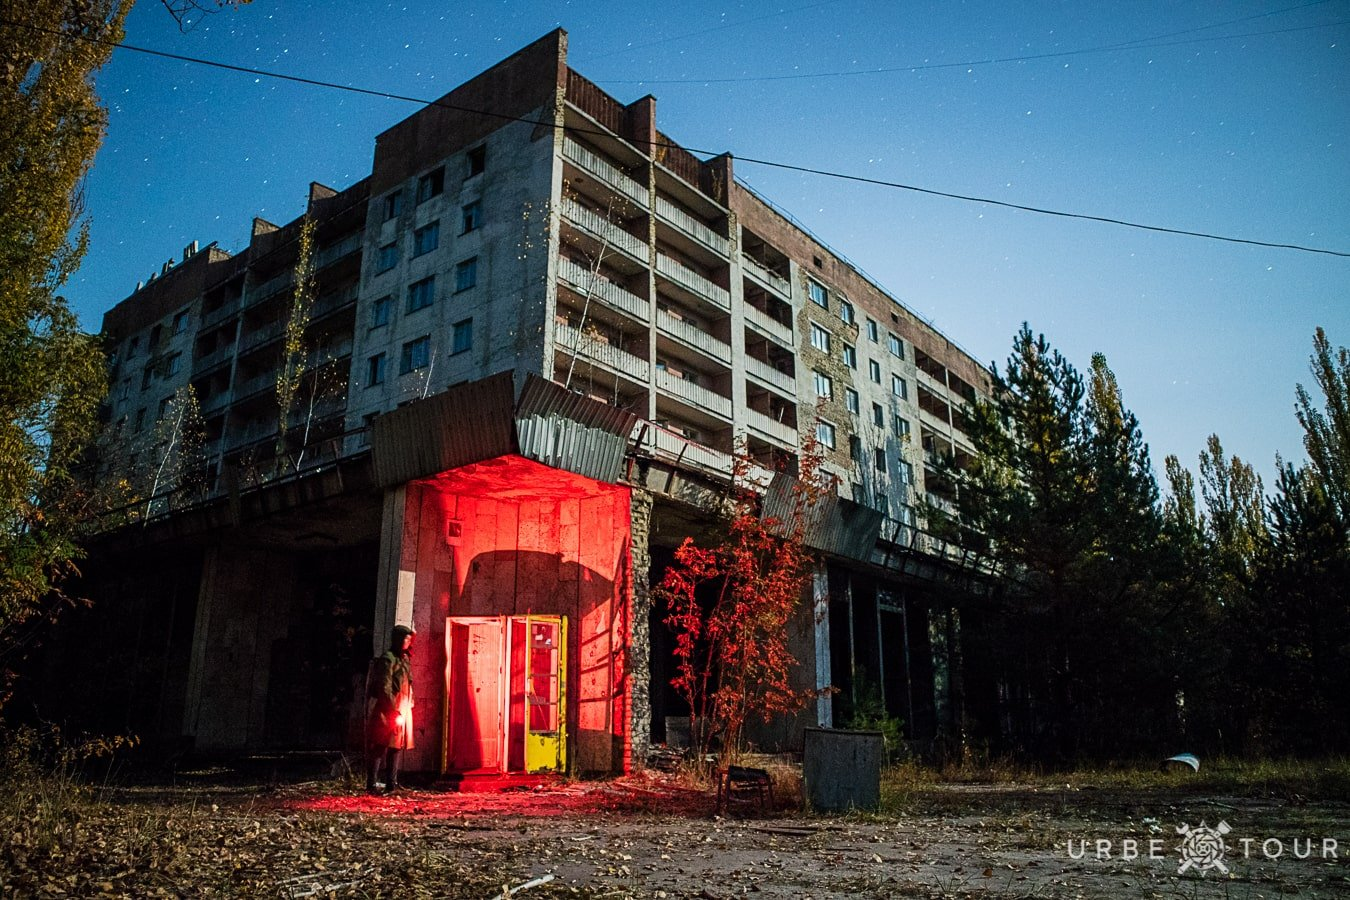 a stalker and an abandoned telephone booth at a corner at night